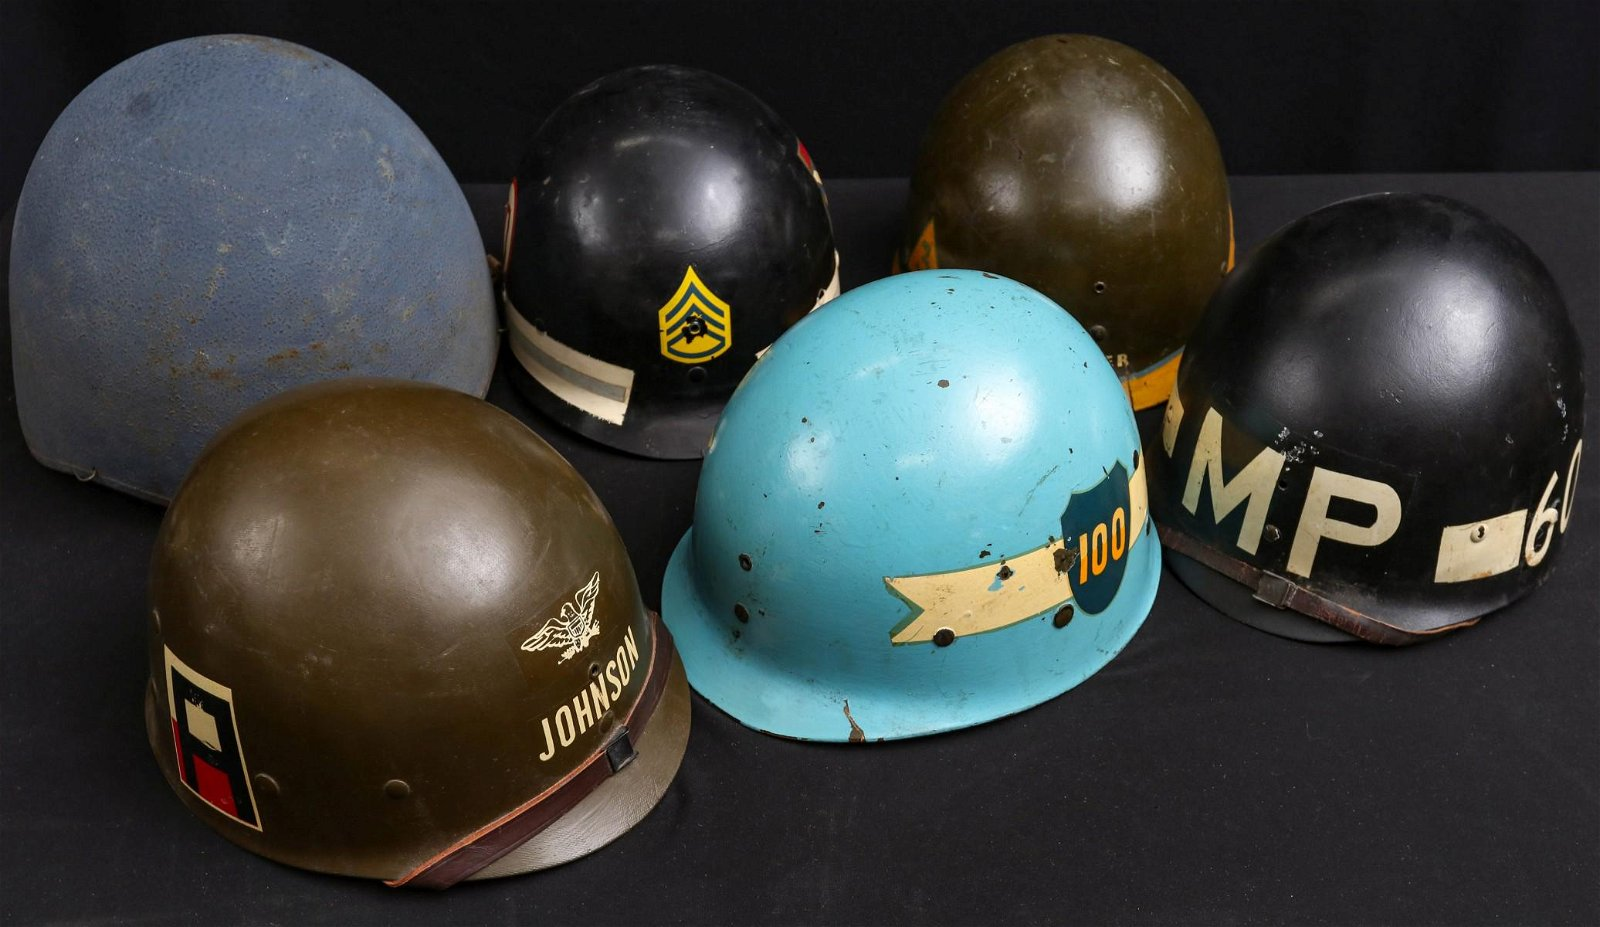 SIX US MILITARY WORLD WAR II HELMETS AND LINERS